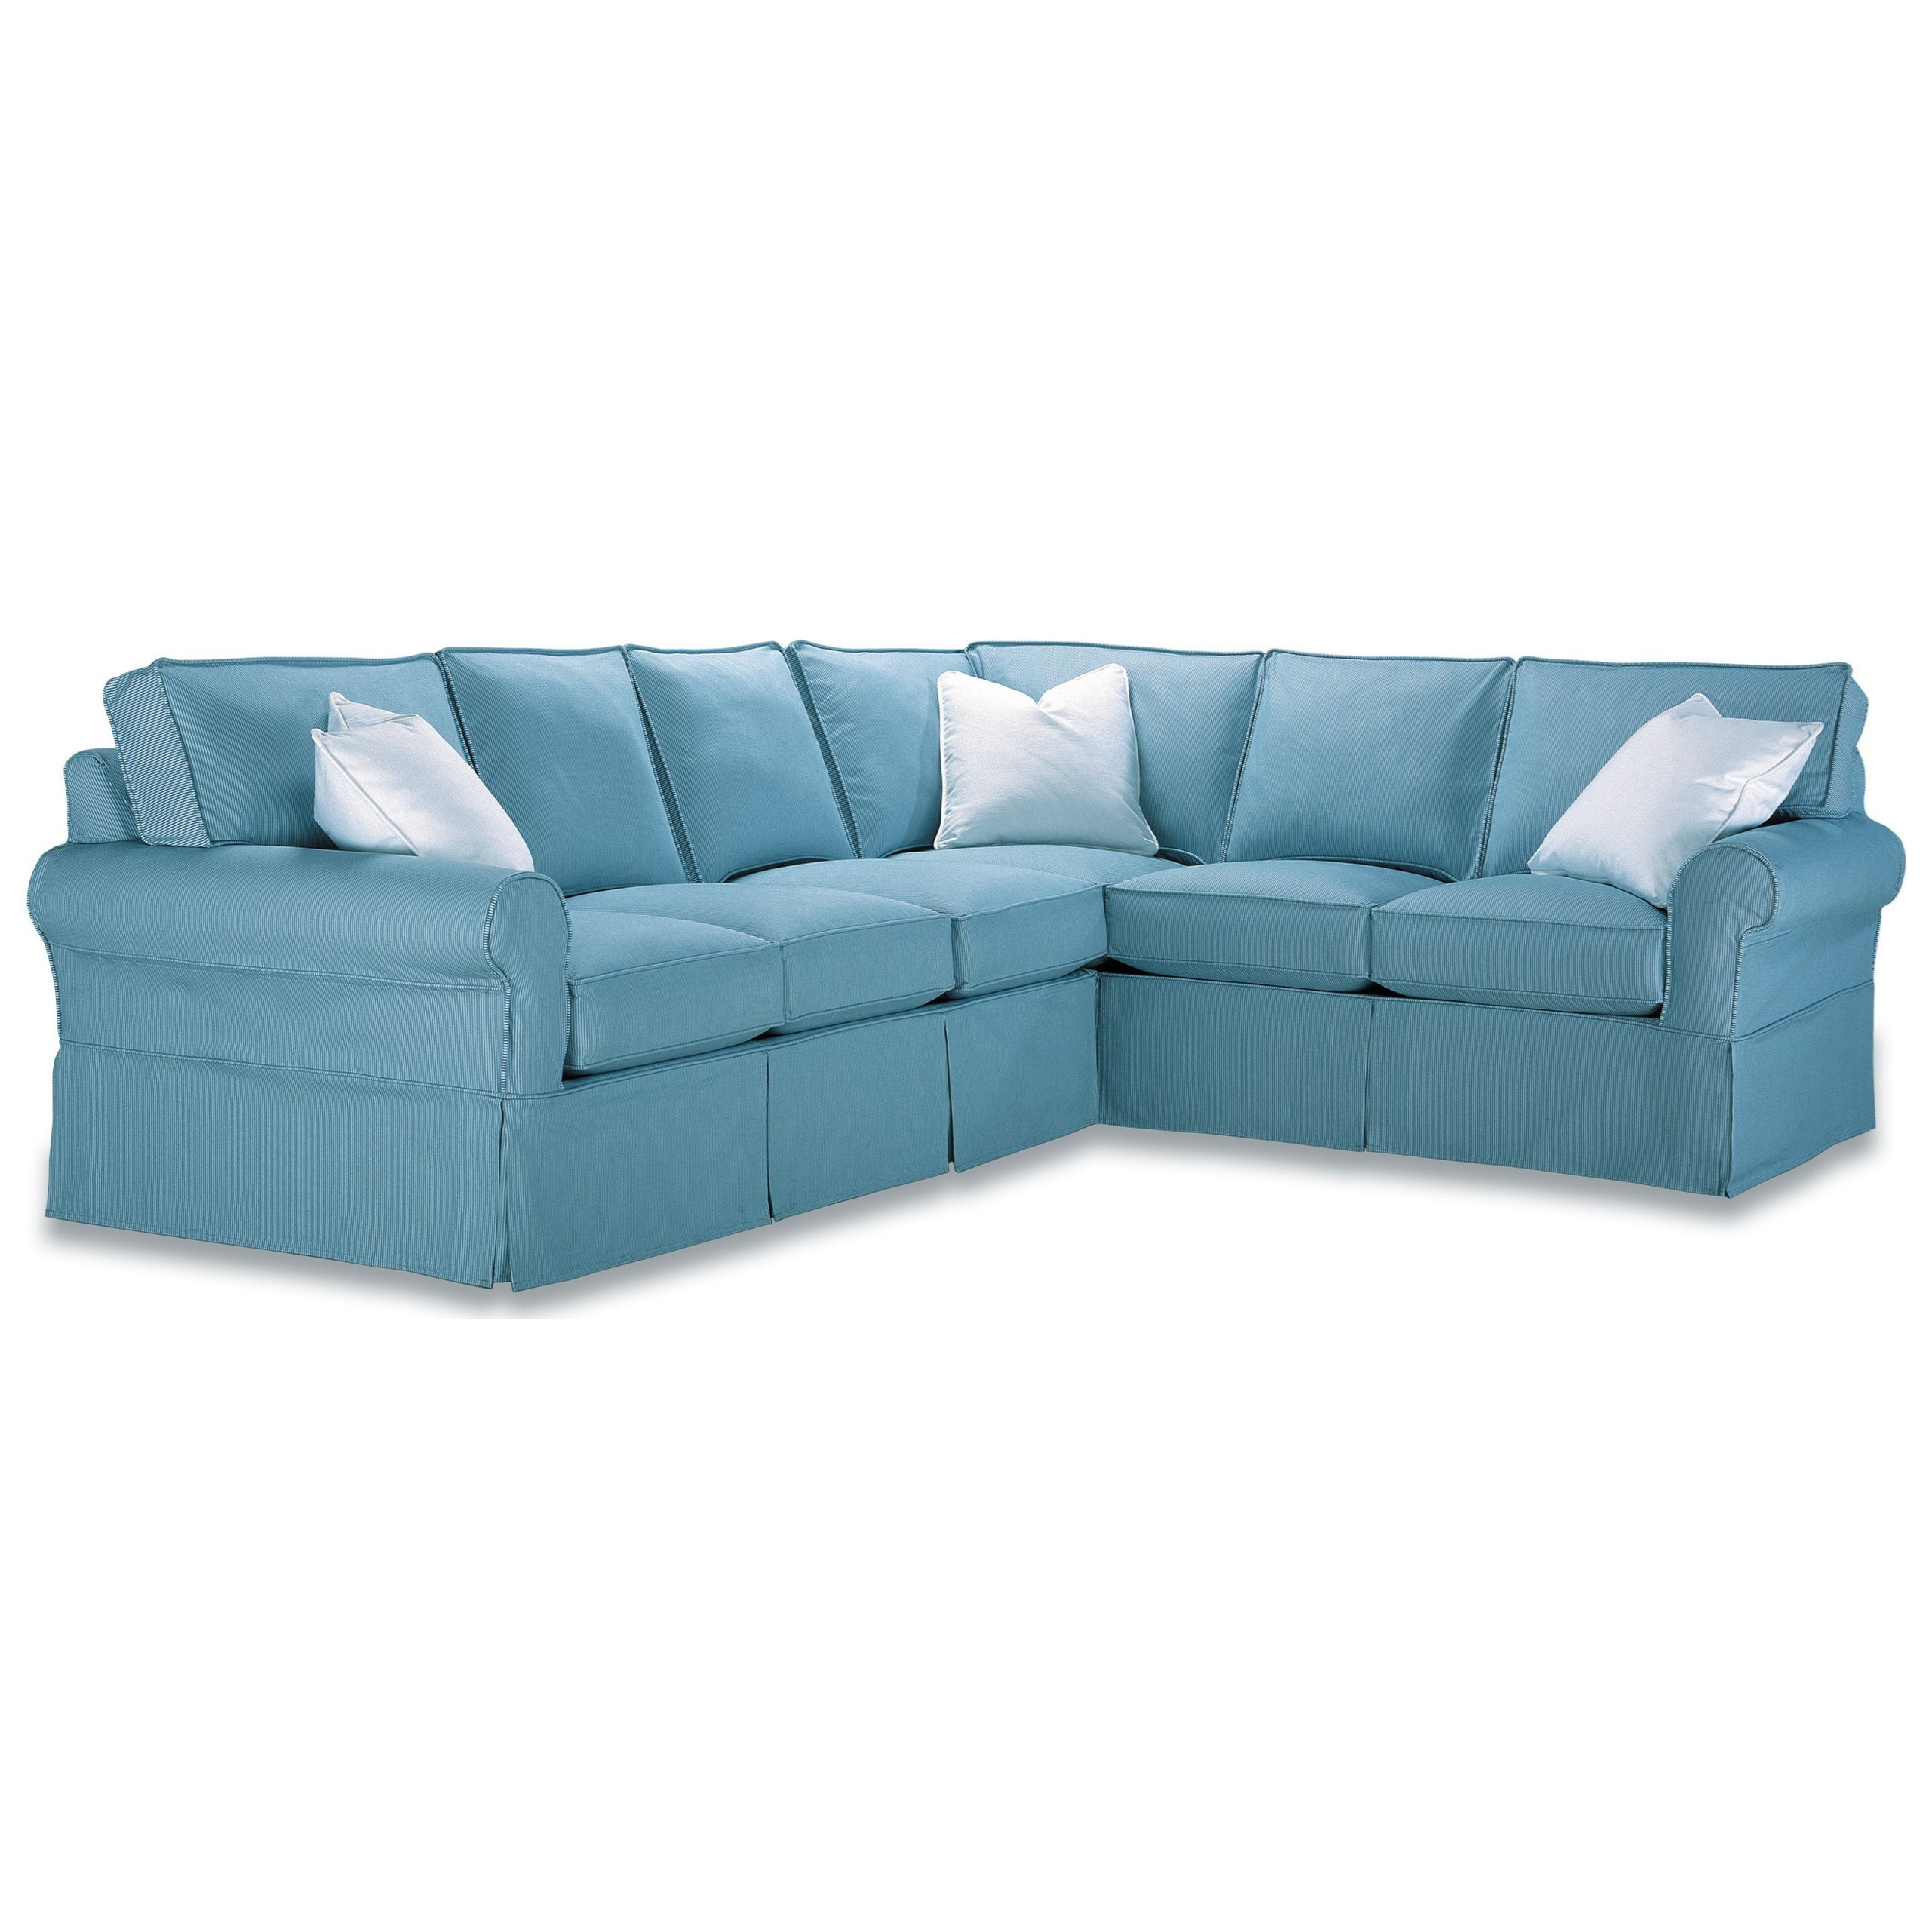 rowe masquerade sectional sofa camel back for sale casual style belfort